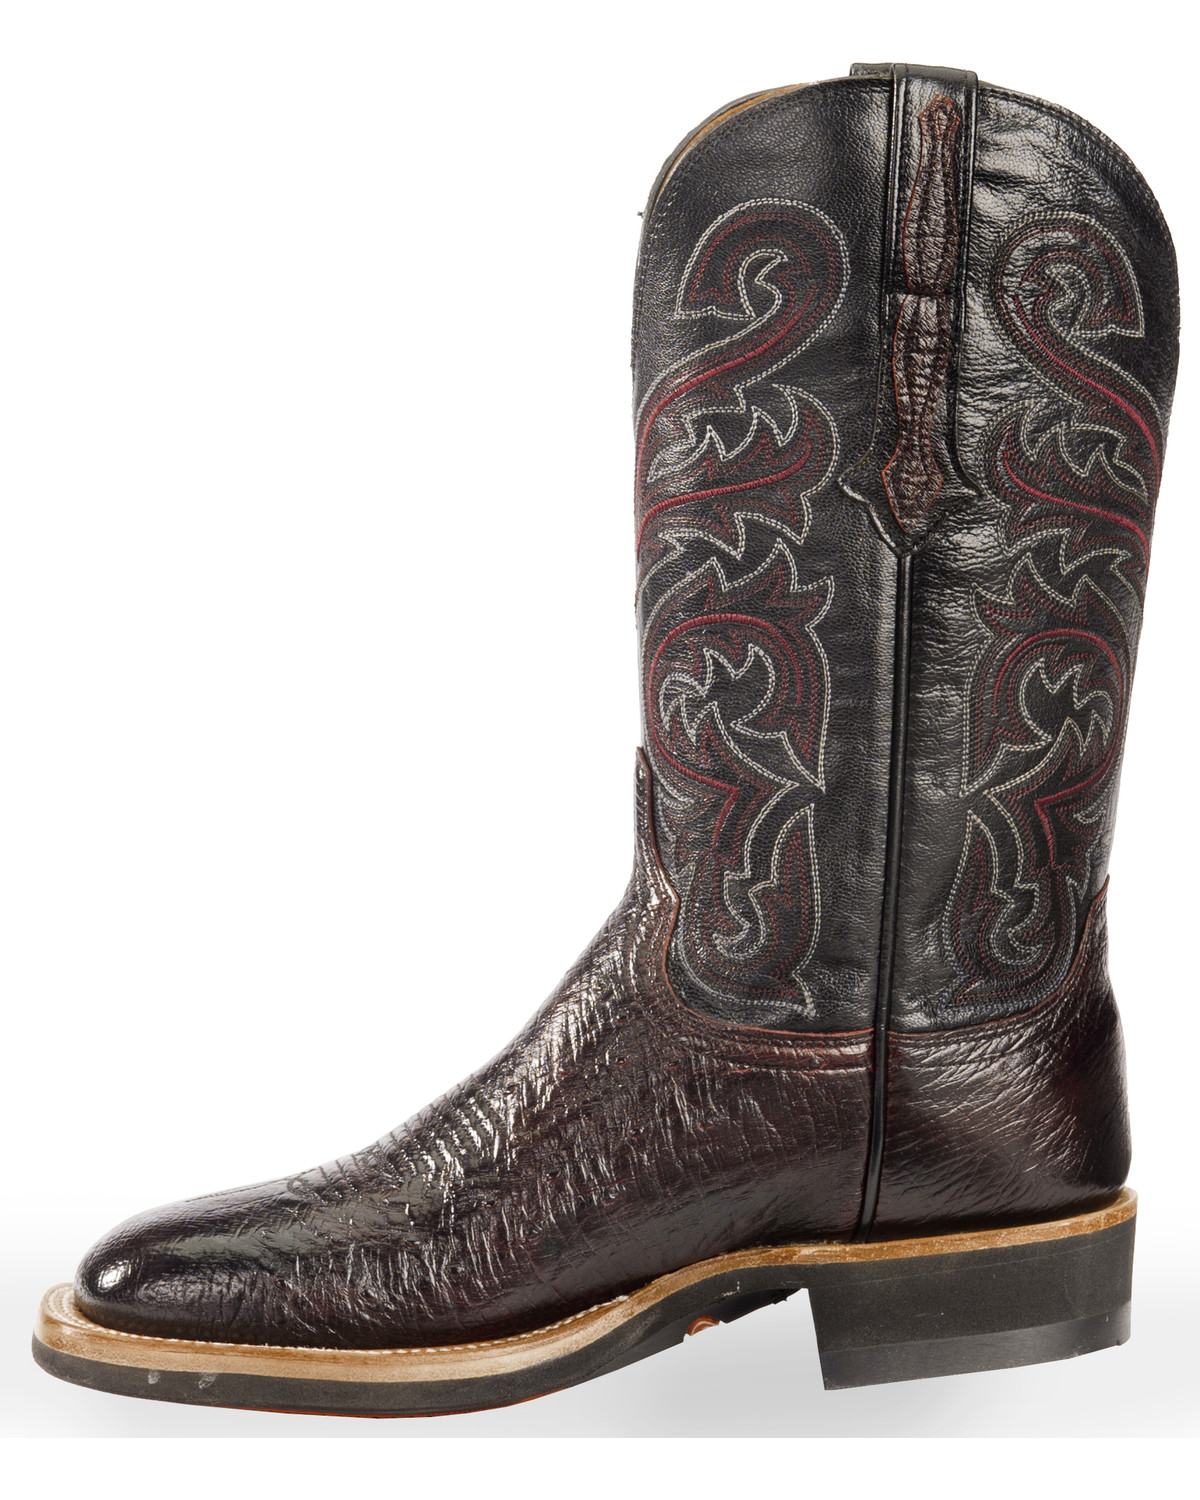 Men's Lucchese Bootmaker Lance W Toe Cowboy Boot, Size: 10.5 D, Black Smooth Ostrich